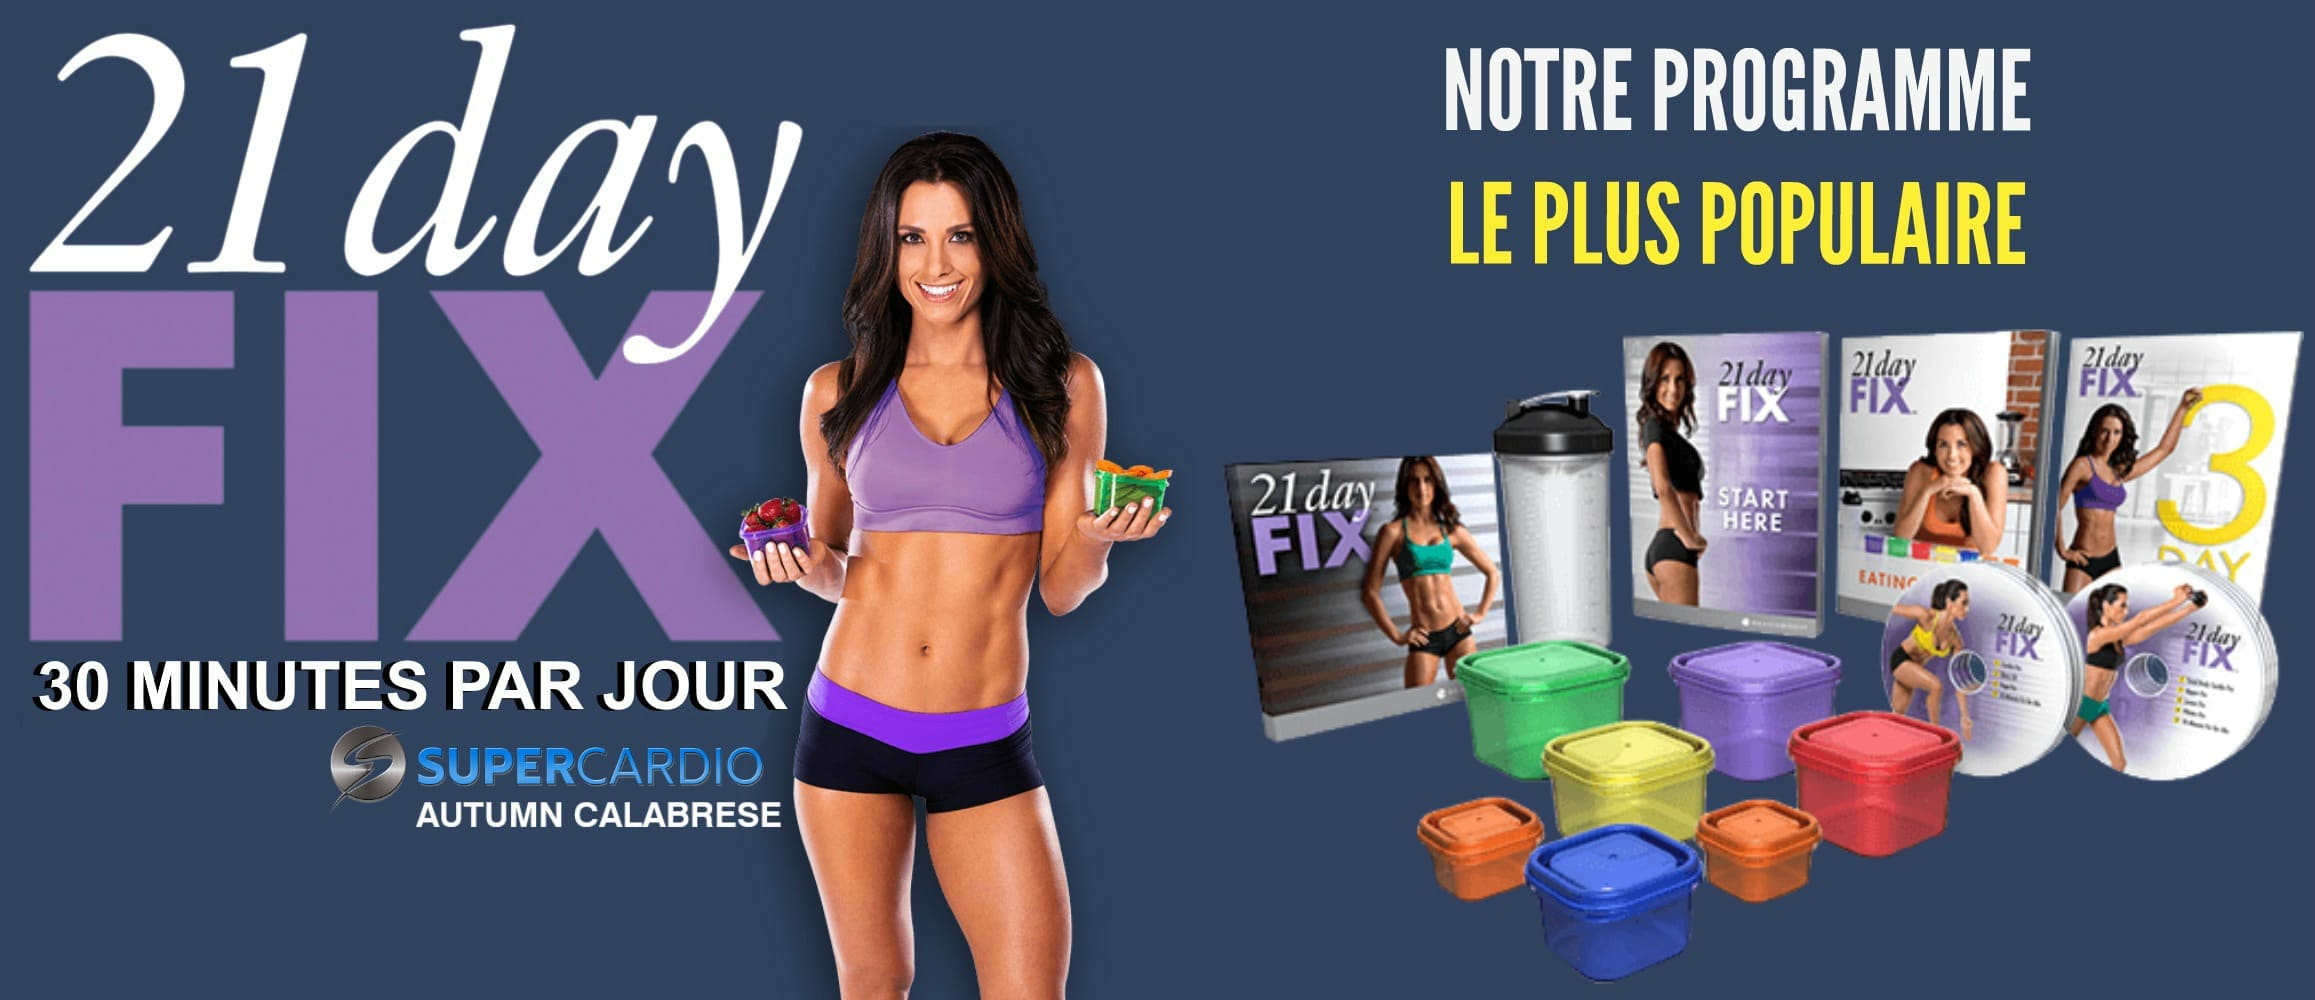 21 day fix français supercardio